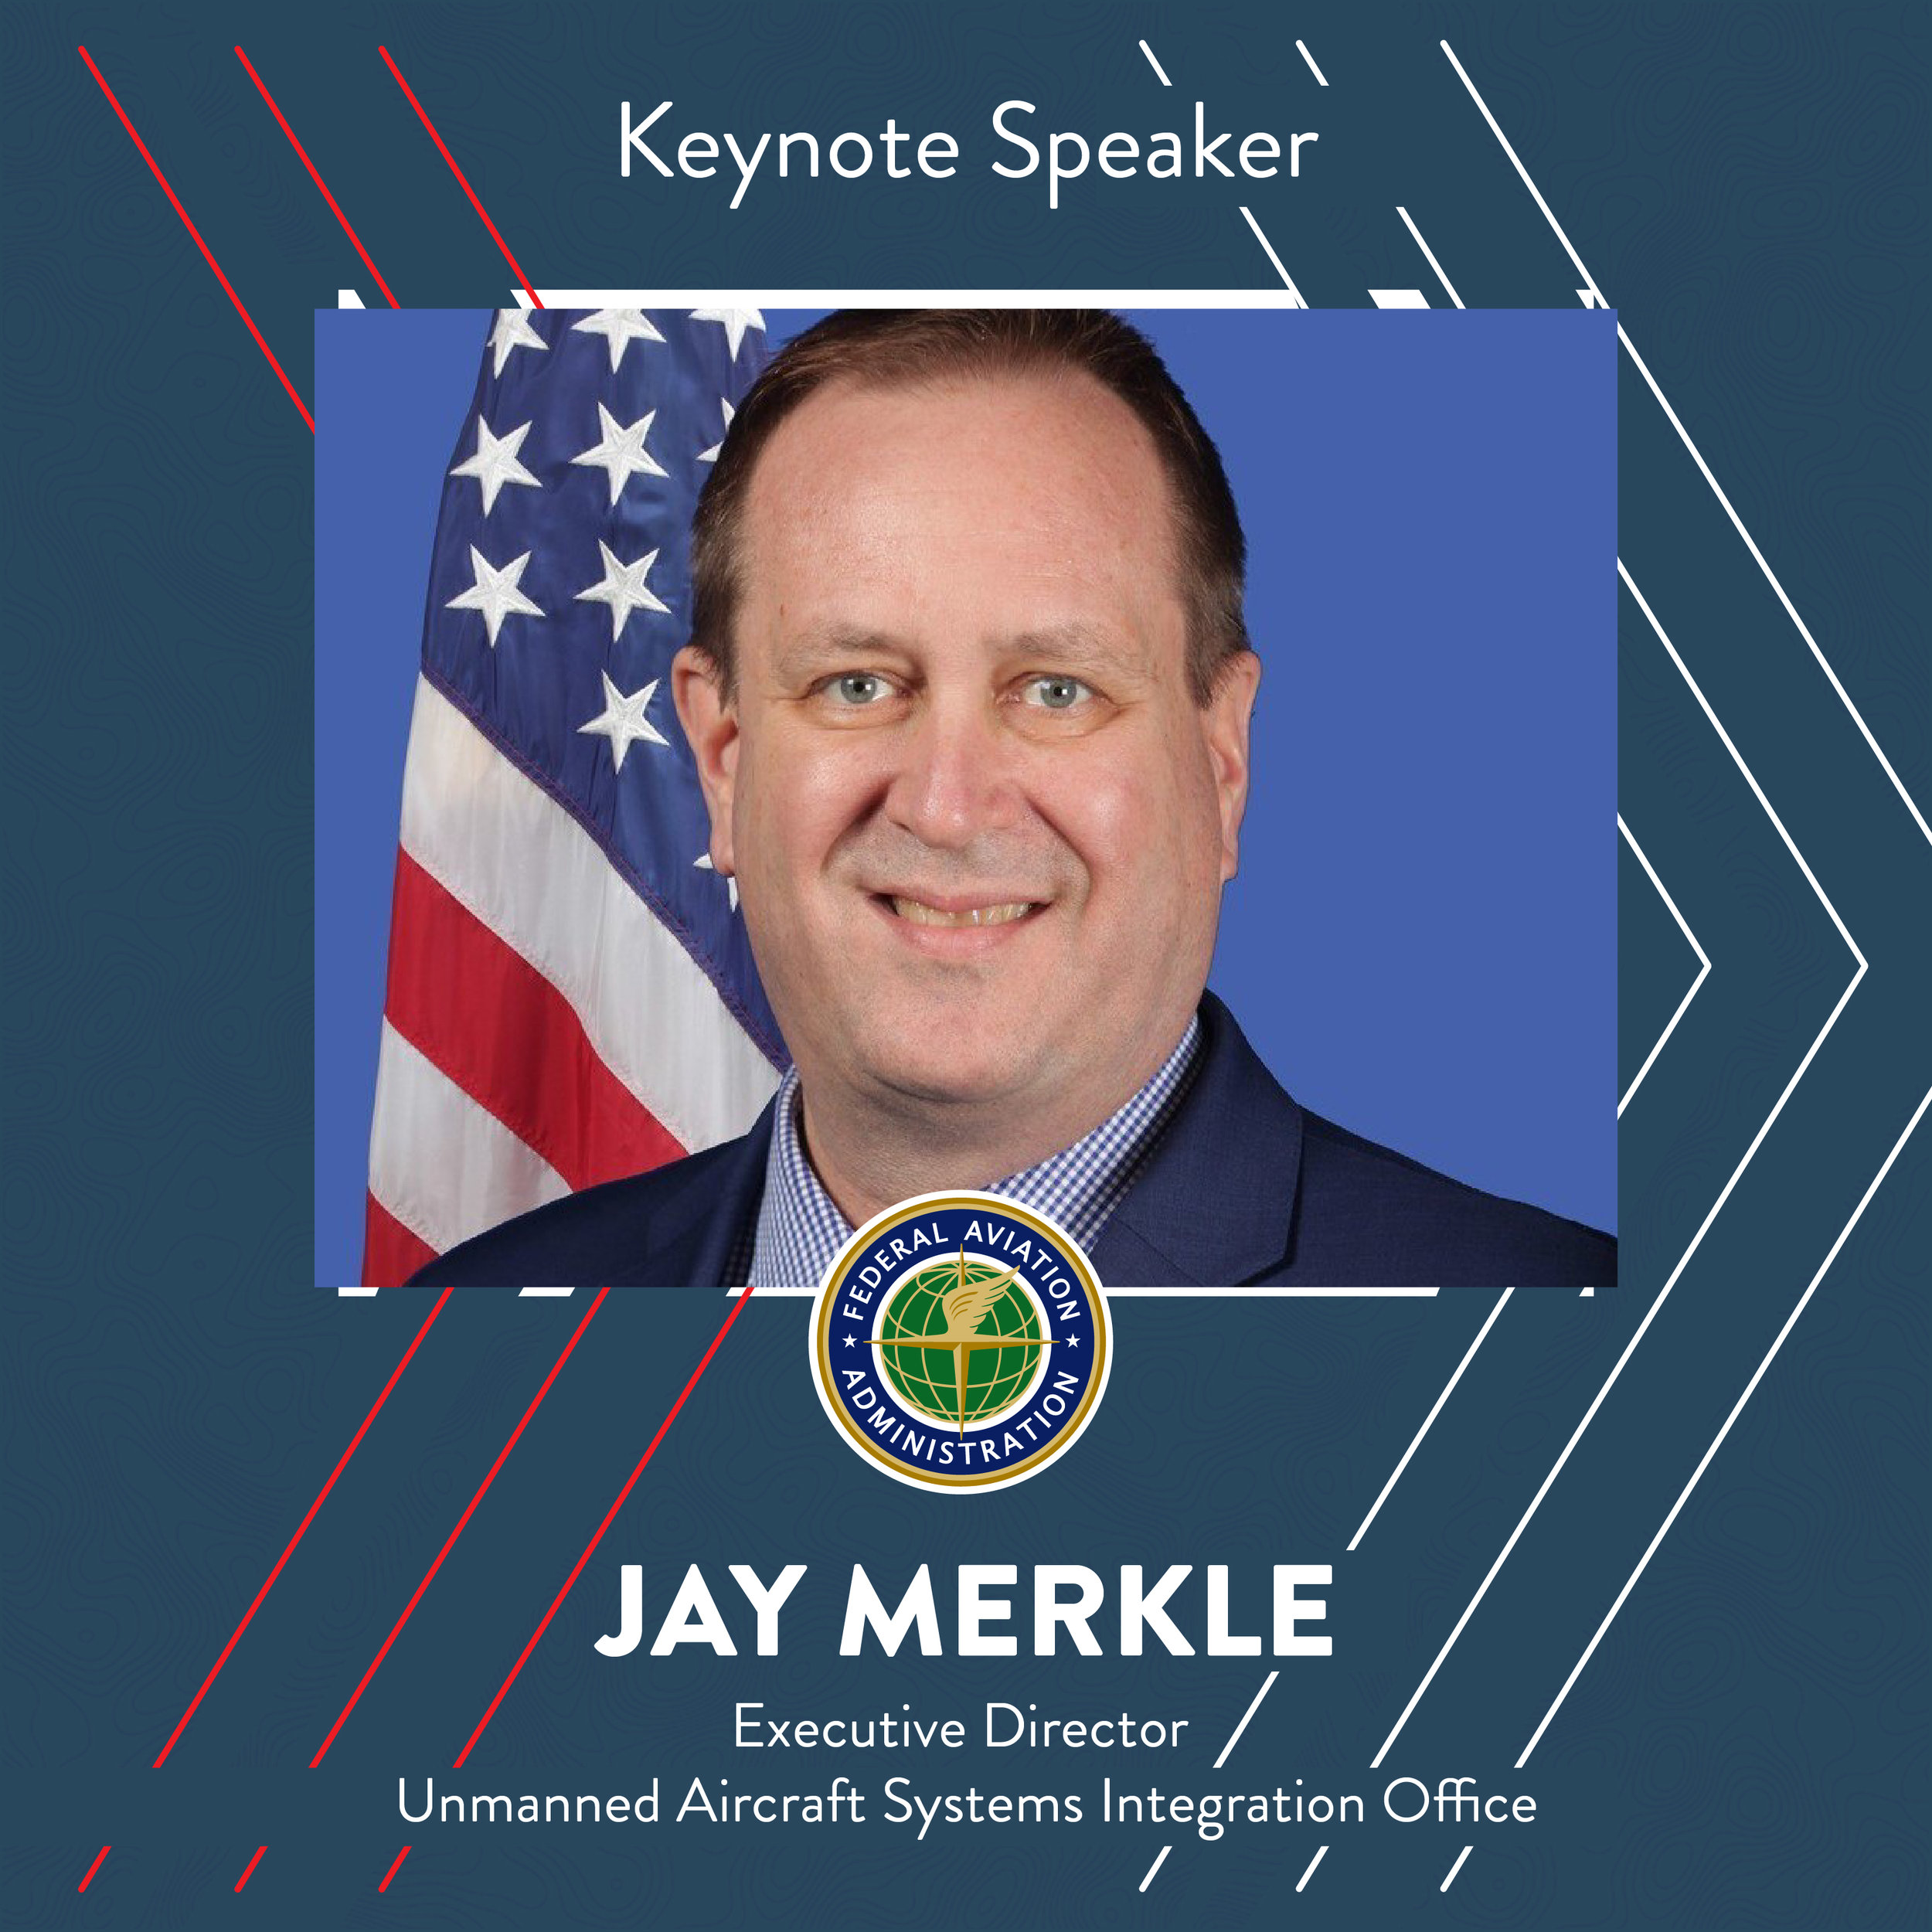 "As Executive Director of the Federal Aviation Administration's Unmanned Air Craft Systems Integration Office (AUS), Peter ""Jay"" Merkle is responsible for facilitating the FAA's safe integration of drones into the National Airspace System.  Prior to joining AUS, Merkle served as Deputy Vice President (DVP) of the Program Management Organization within the Air Traffic Organization. As the DVP, he worked with FAA operations and aviation users to ensure globally interoperable solutions for NextGen. He was also a key architect of the Low Altitude Authorization and Notification Capability program."